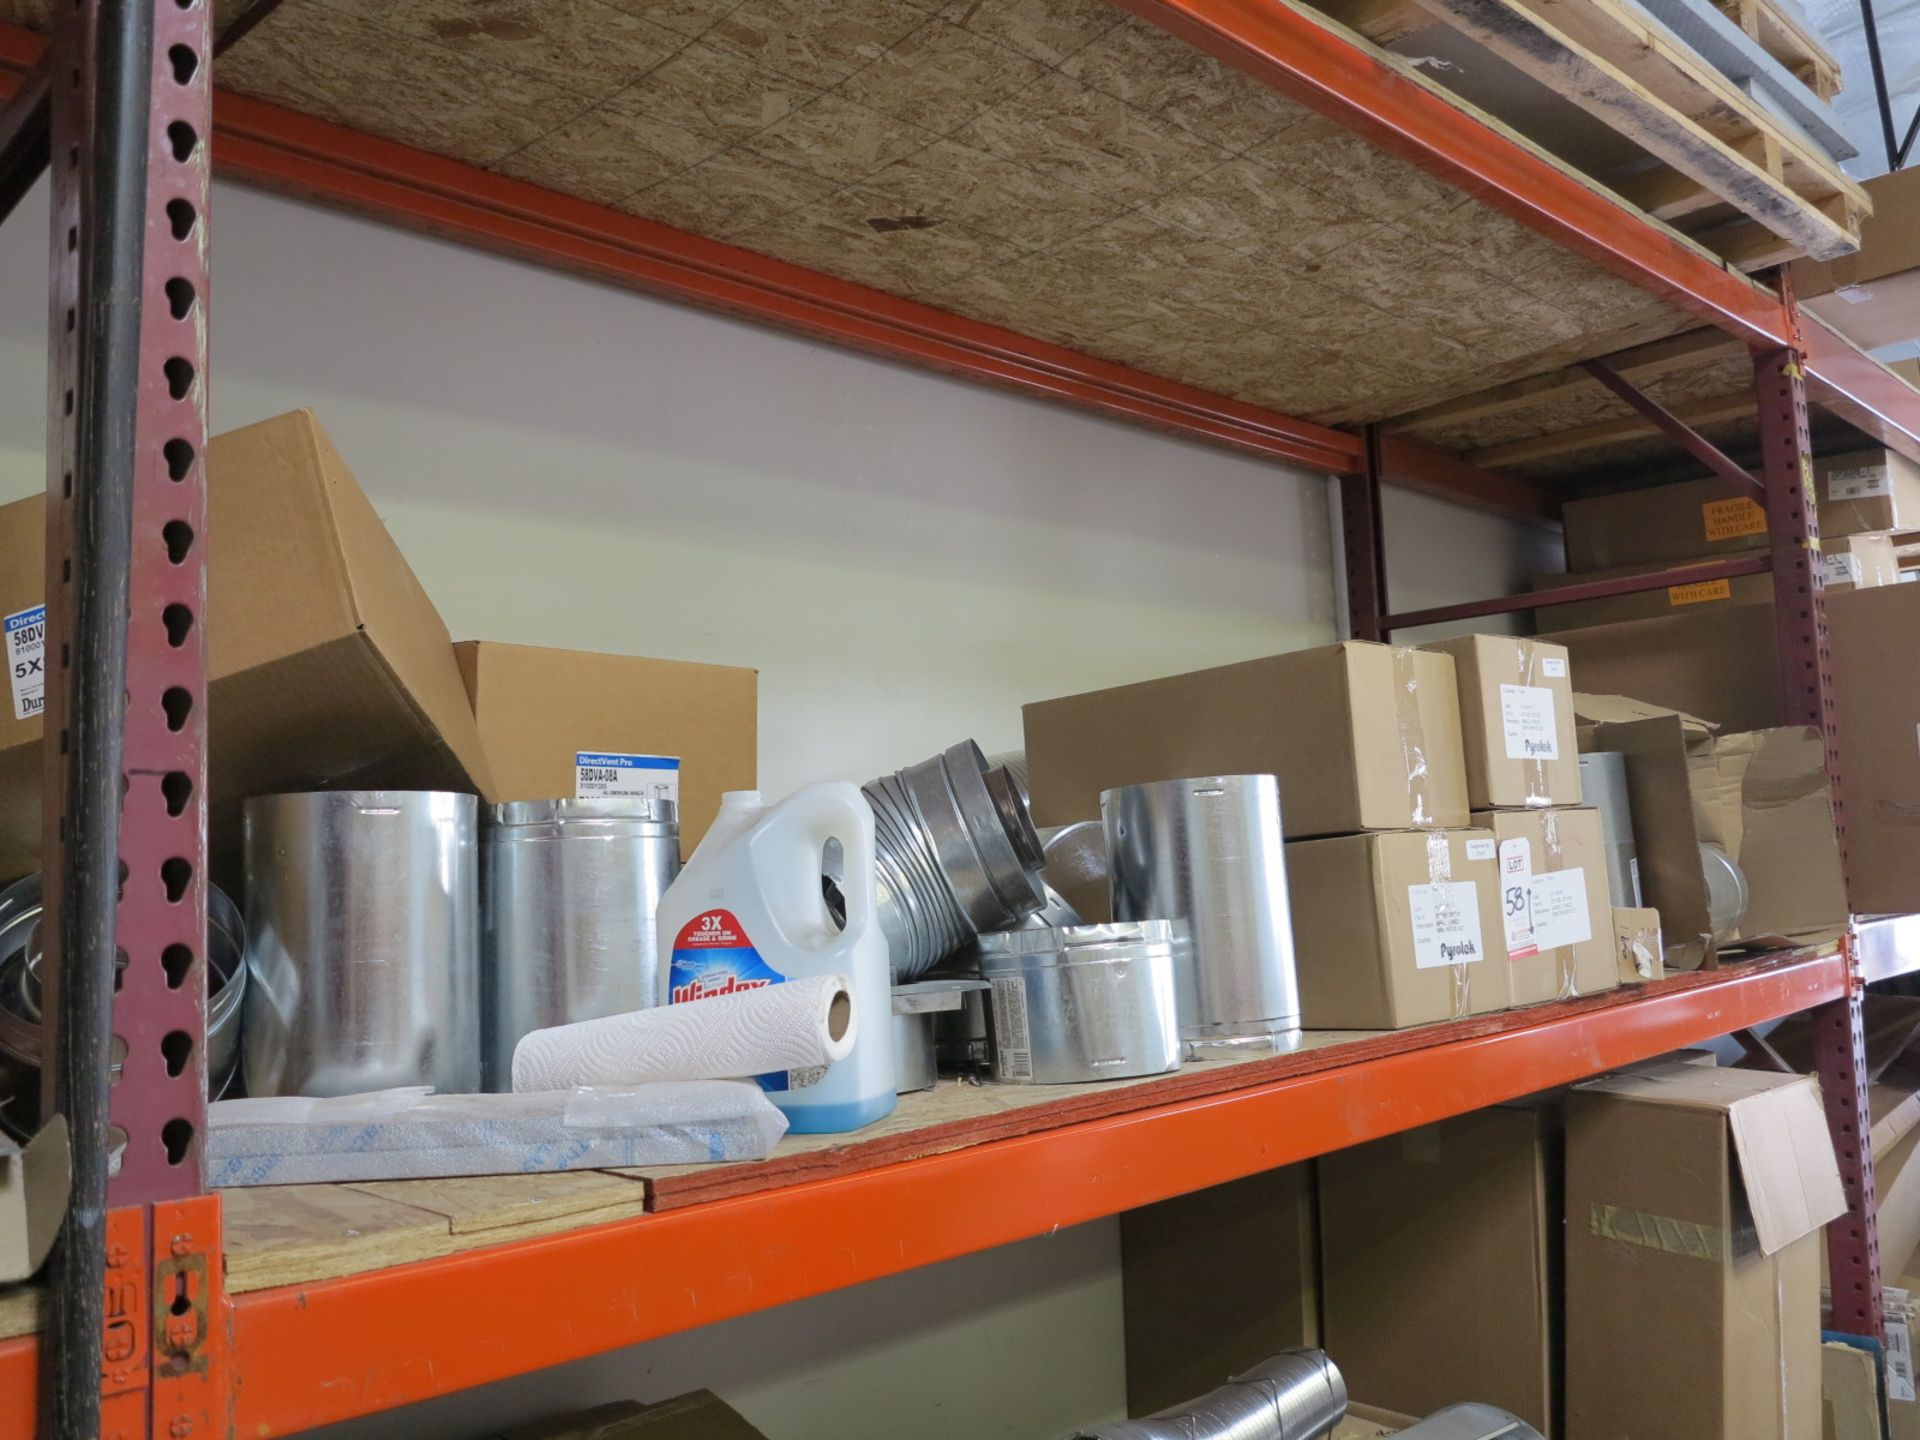 LOT - CONTENTS OF (1) SECTION OF PALLET RACKING, MISC STOVE PARTS - Image 2 of 3